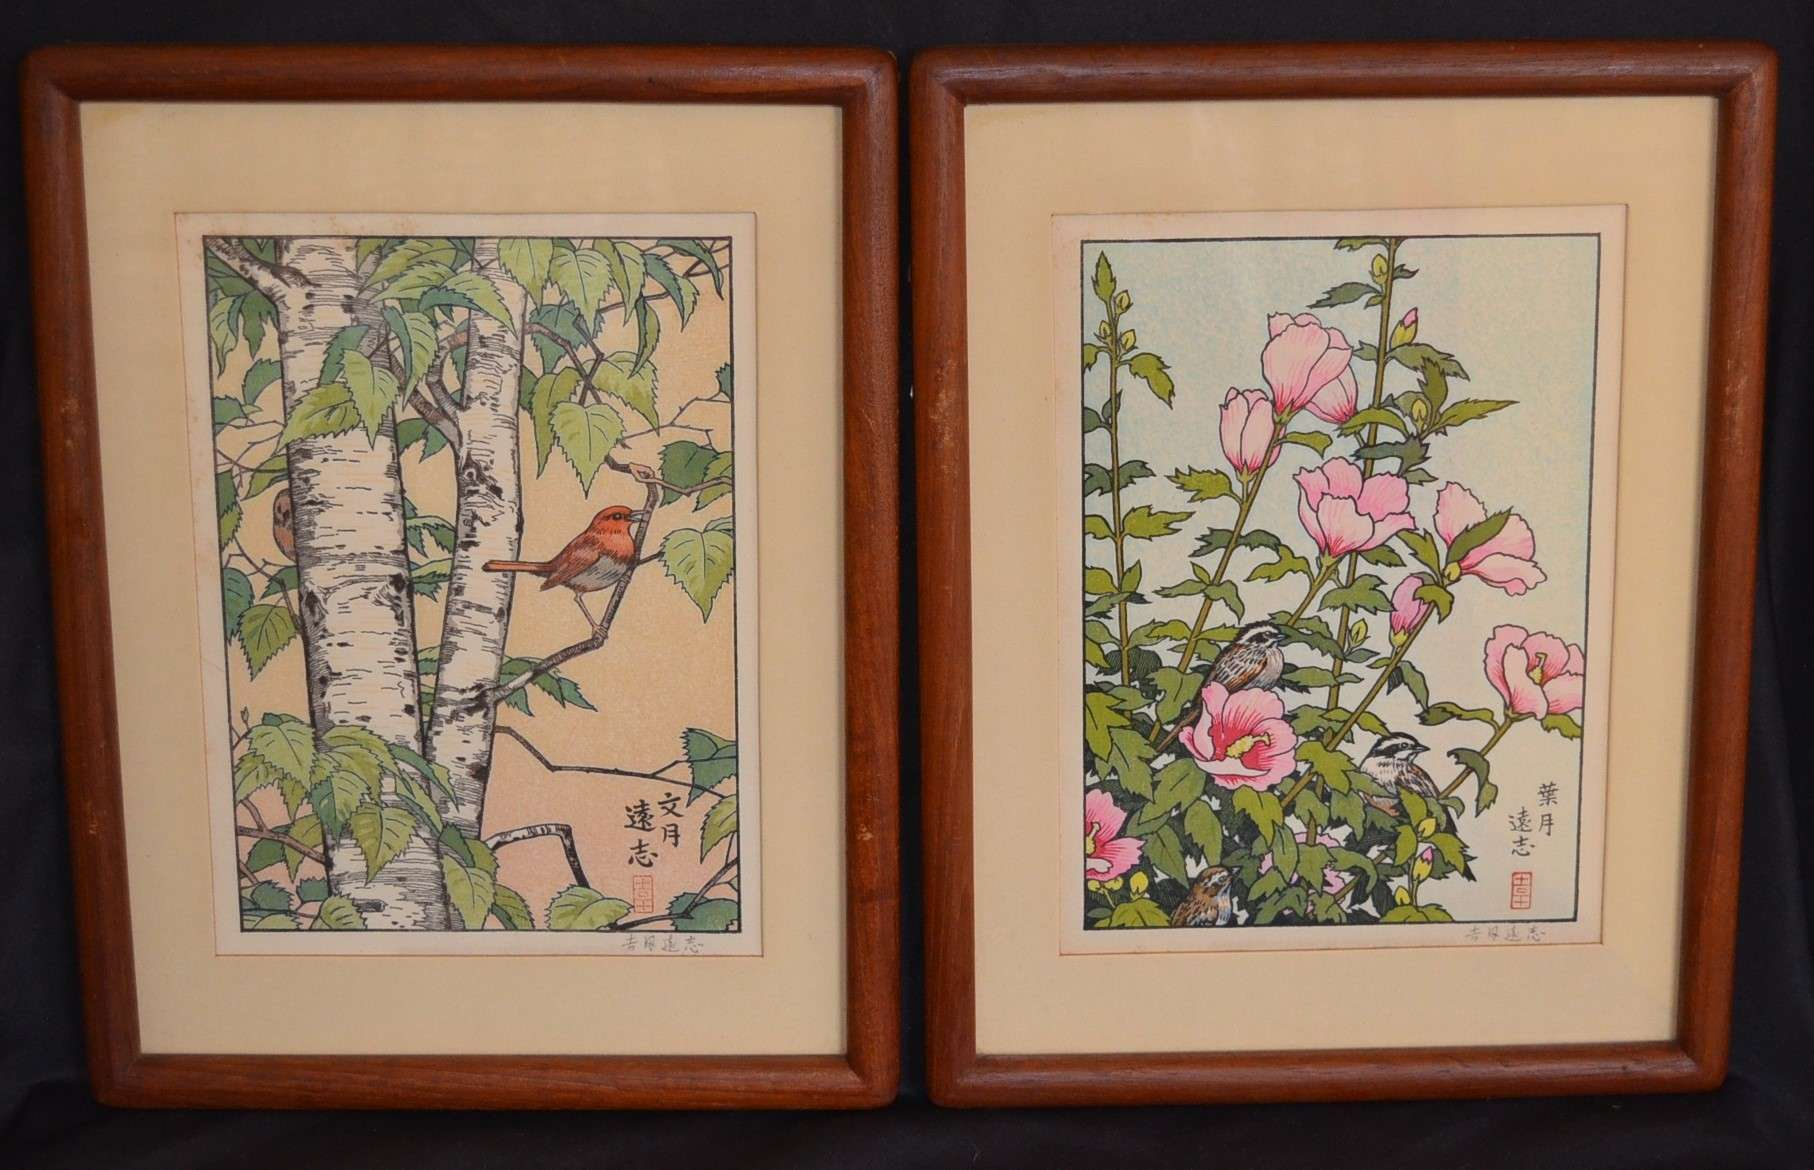 TOSHI YOSHIDA: THE FLOWERS AND BIRDS OF THE ORIENTAL YEAR - July / August